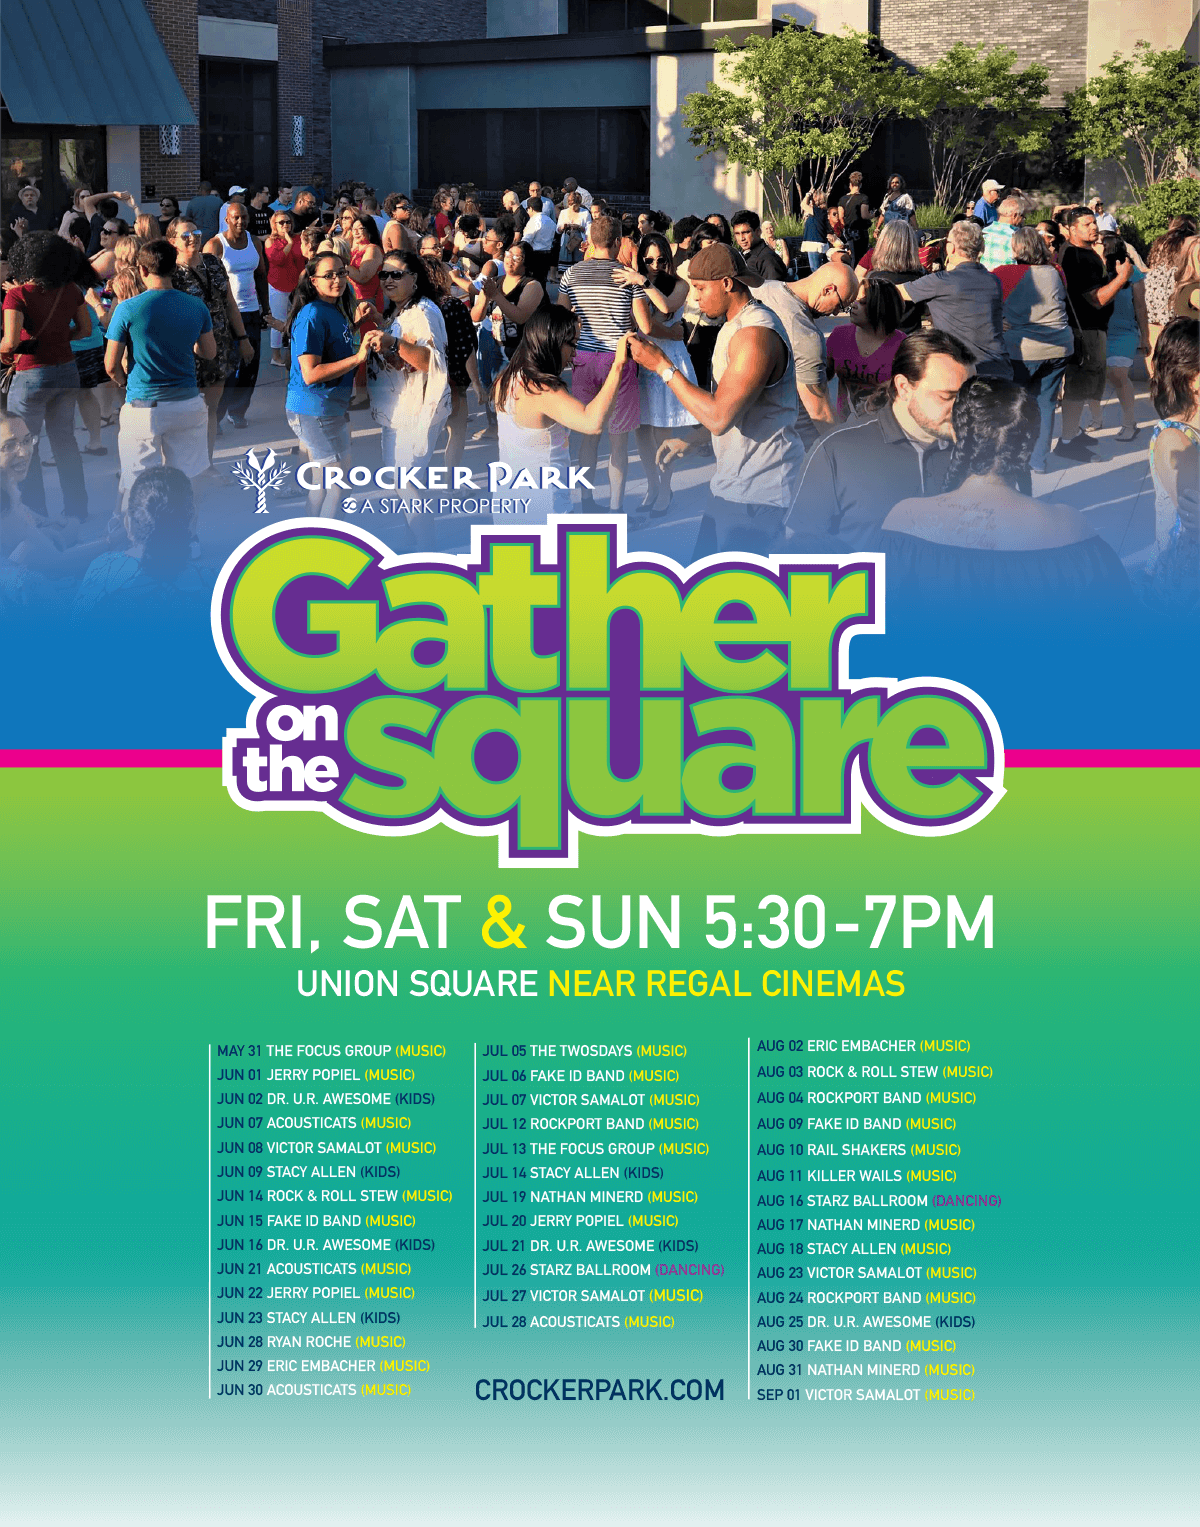 Gather on the Square